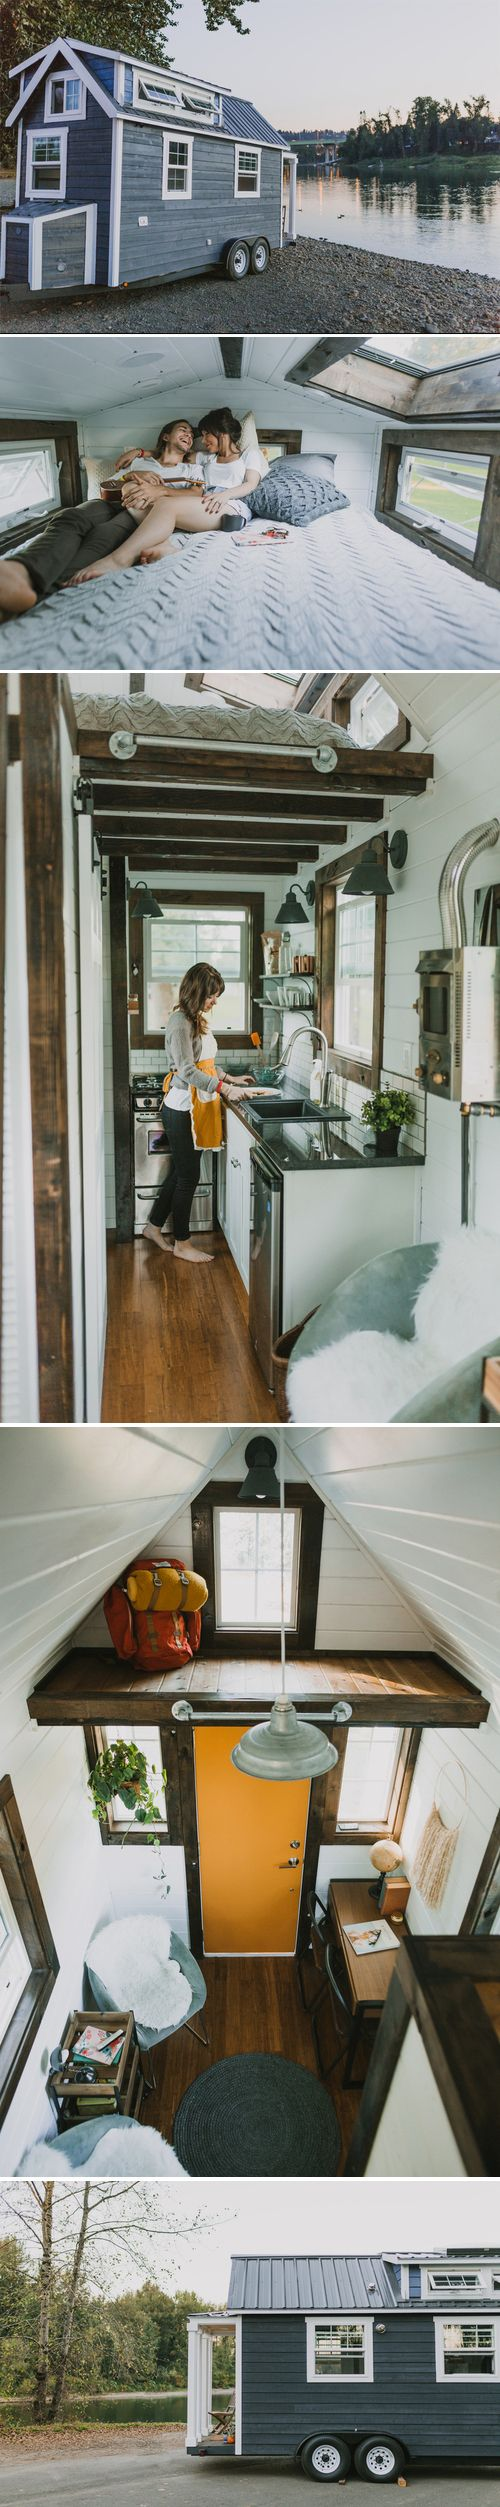 best tiny houses images on pinterest architecture small houses